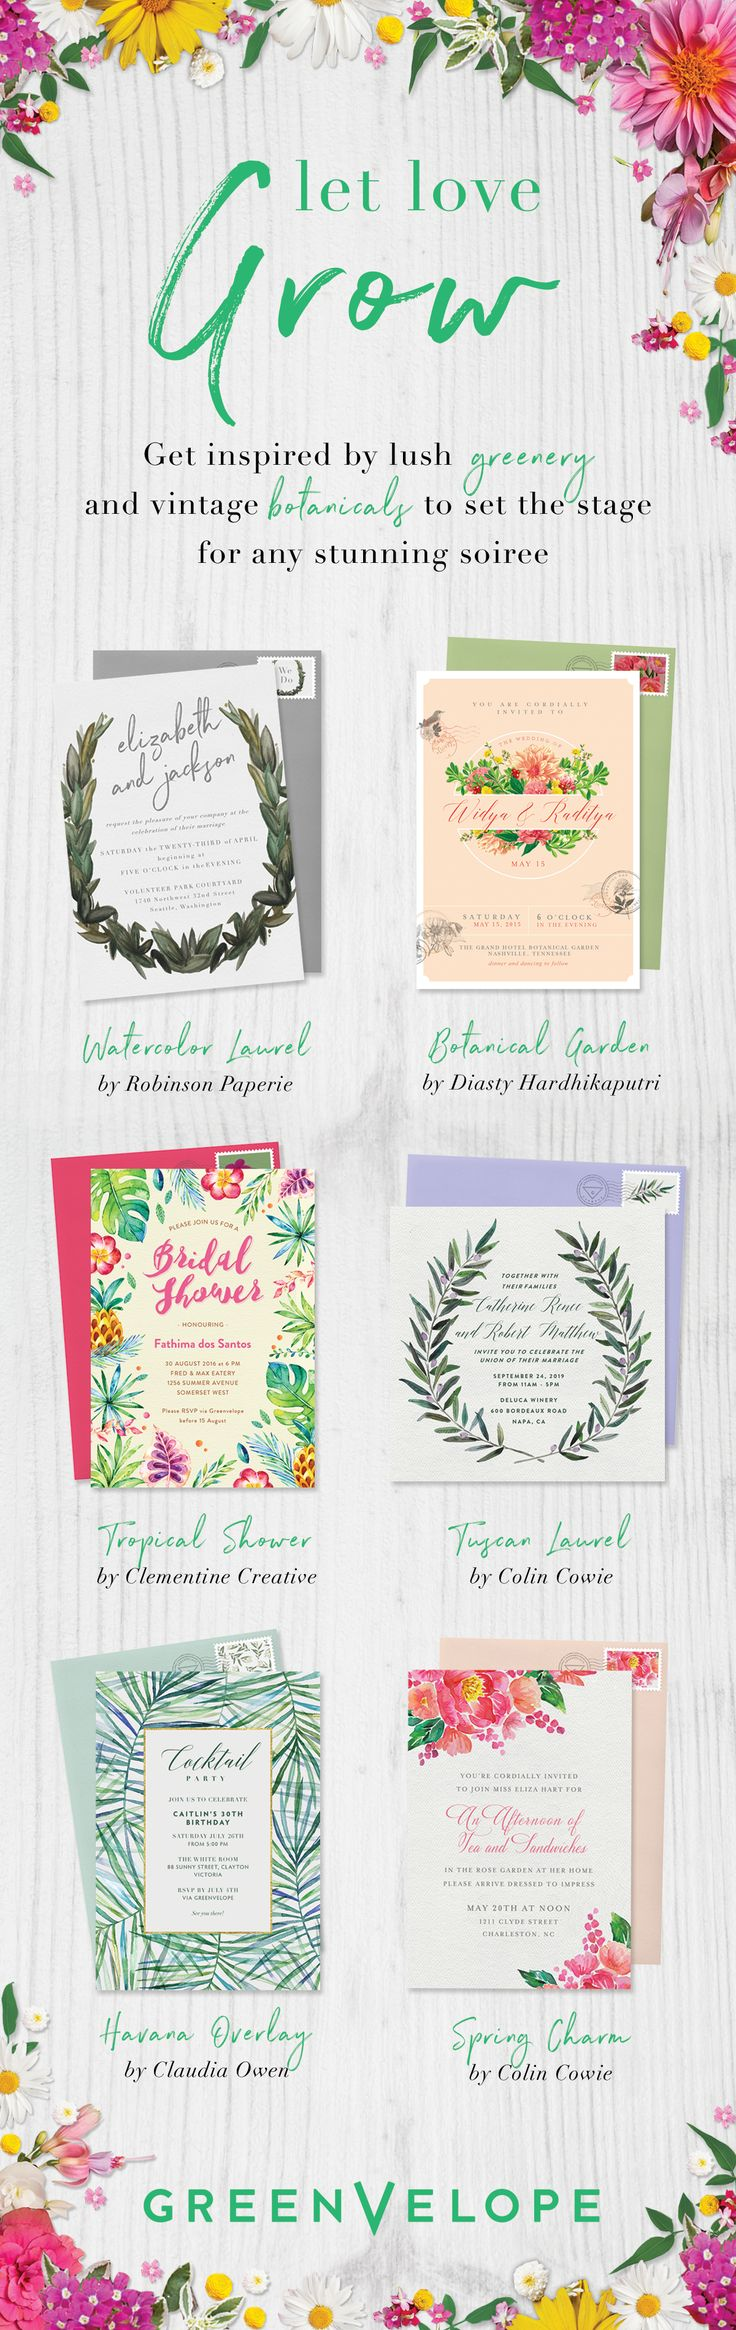 Let love bloom with a garden inspired wedding theme. Greenvelope.com offers chic, paperless invitations designed with your favorite florals in mind.